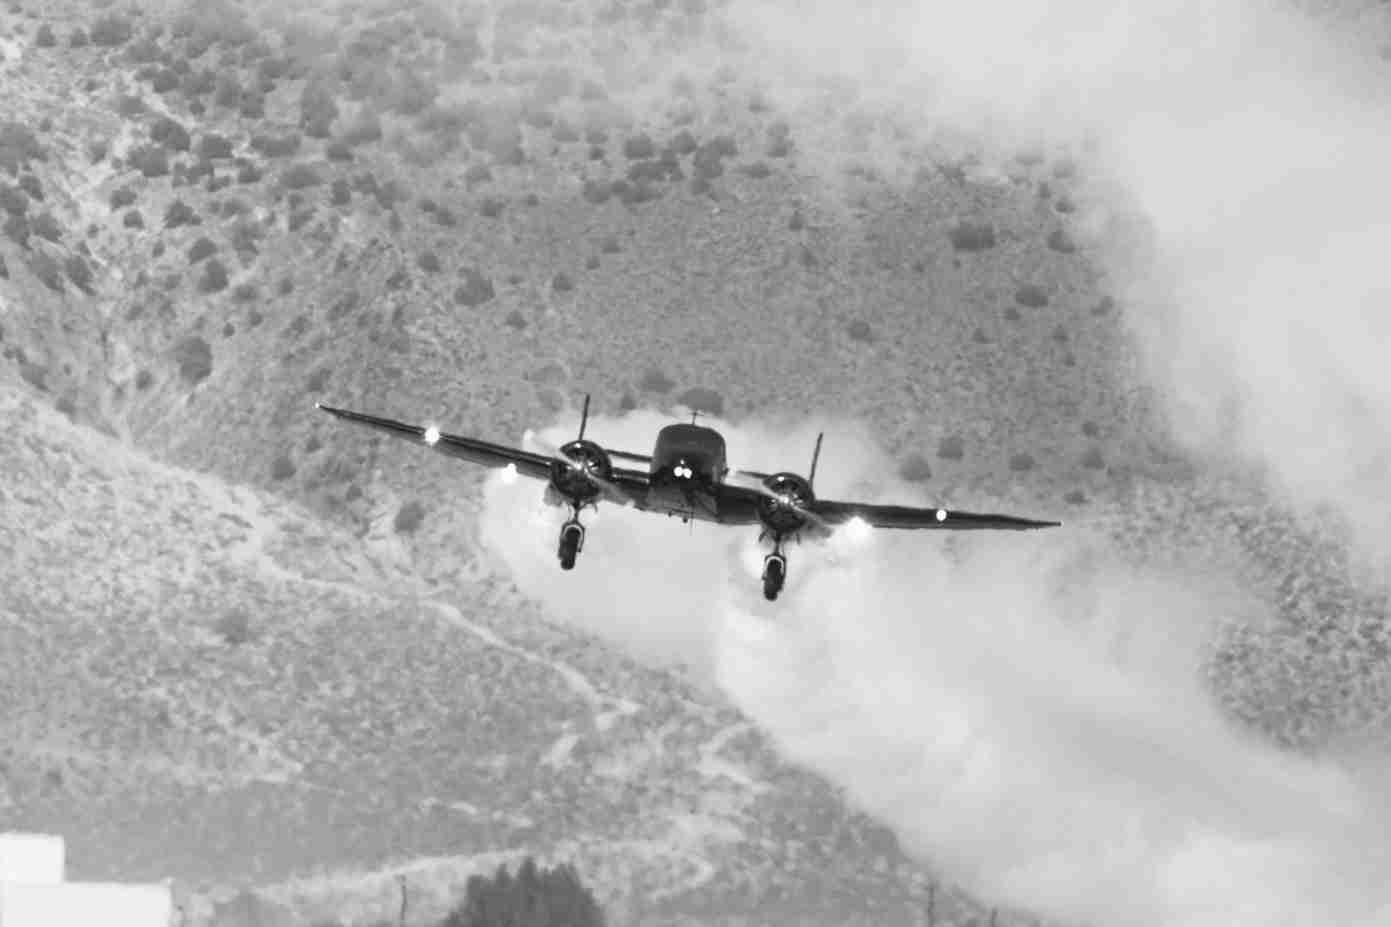 Black & White Photo of a Beech 18 Plane Finishing a Loop